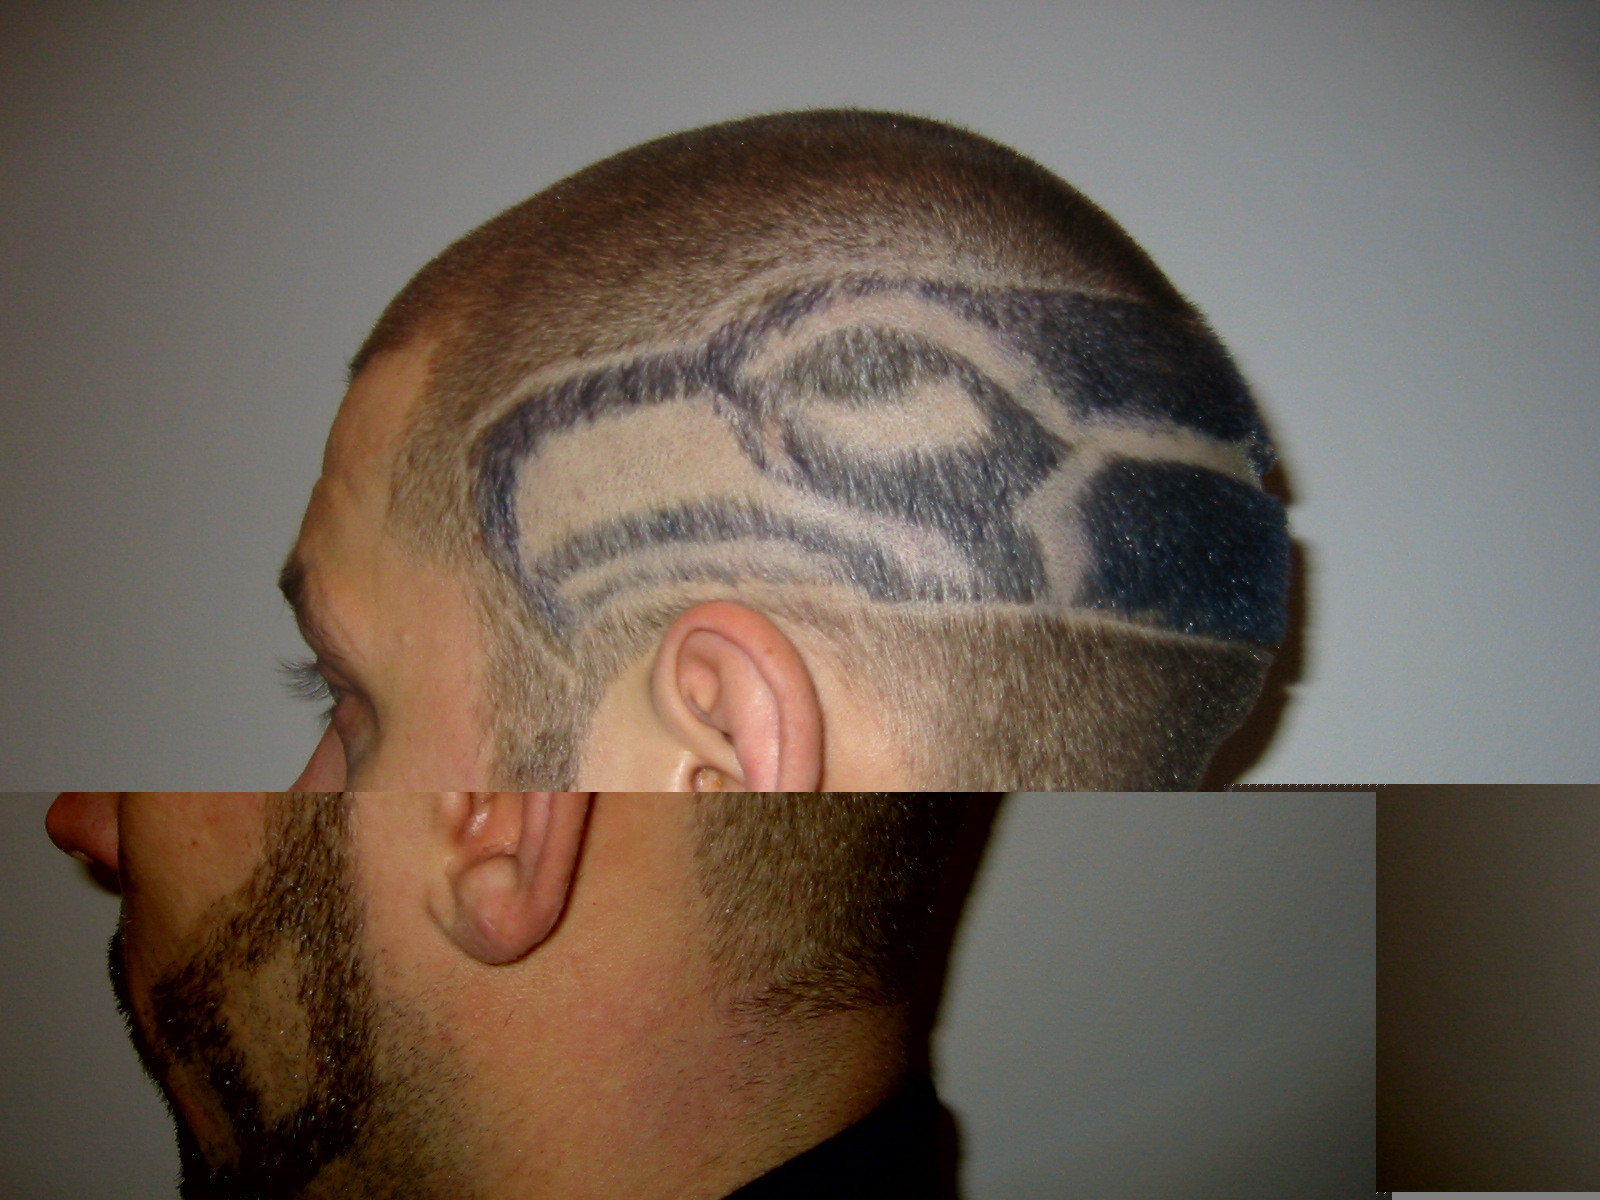 Seattle Seahawks Images Seahawks Haircut Hd Wallpaper And Background